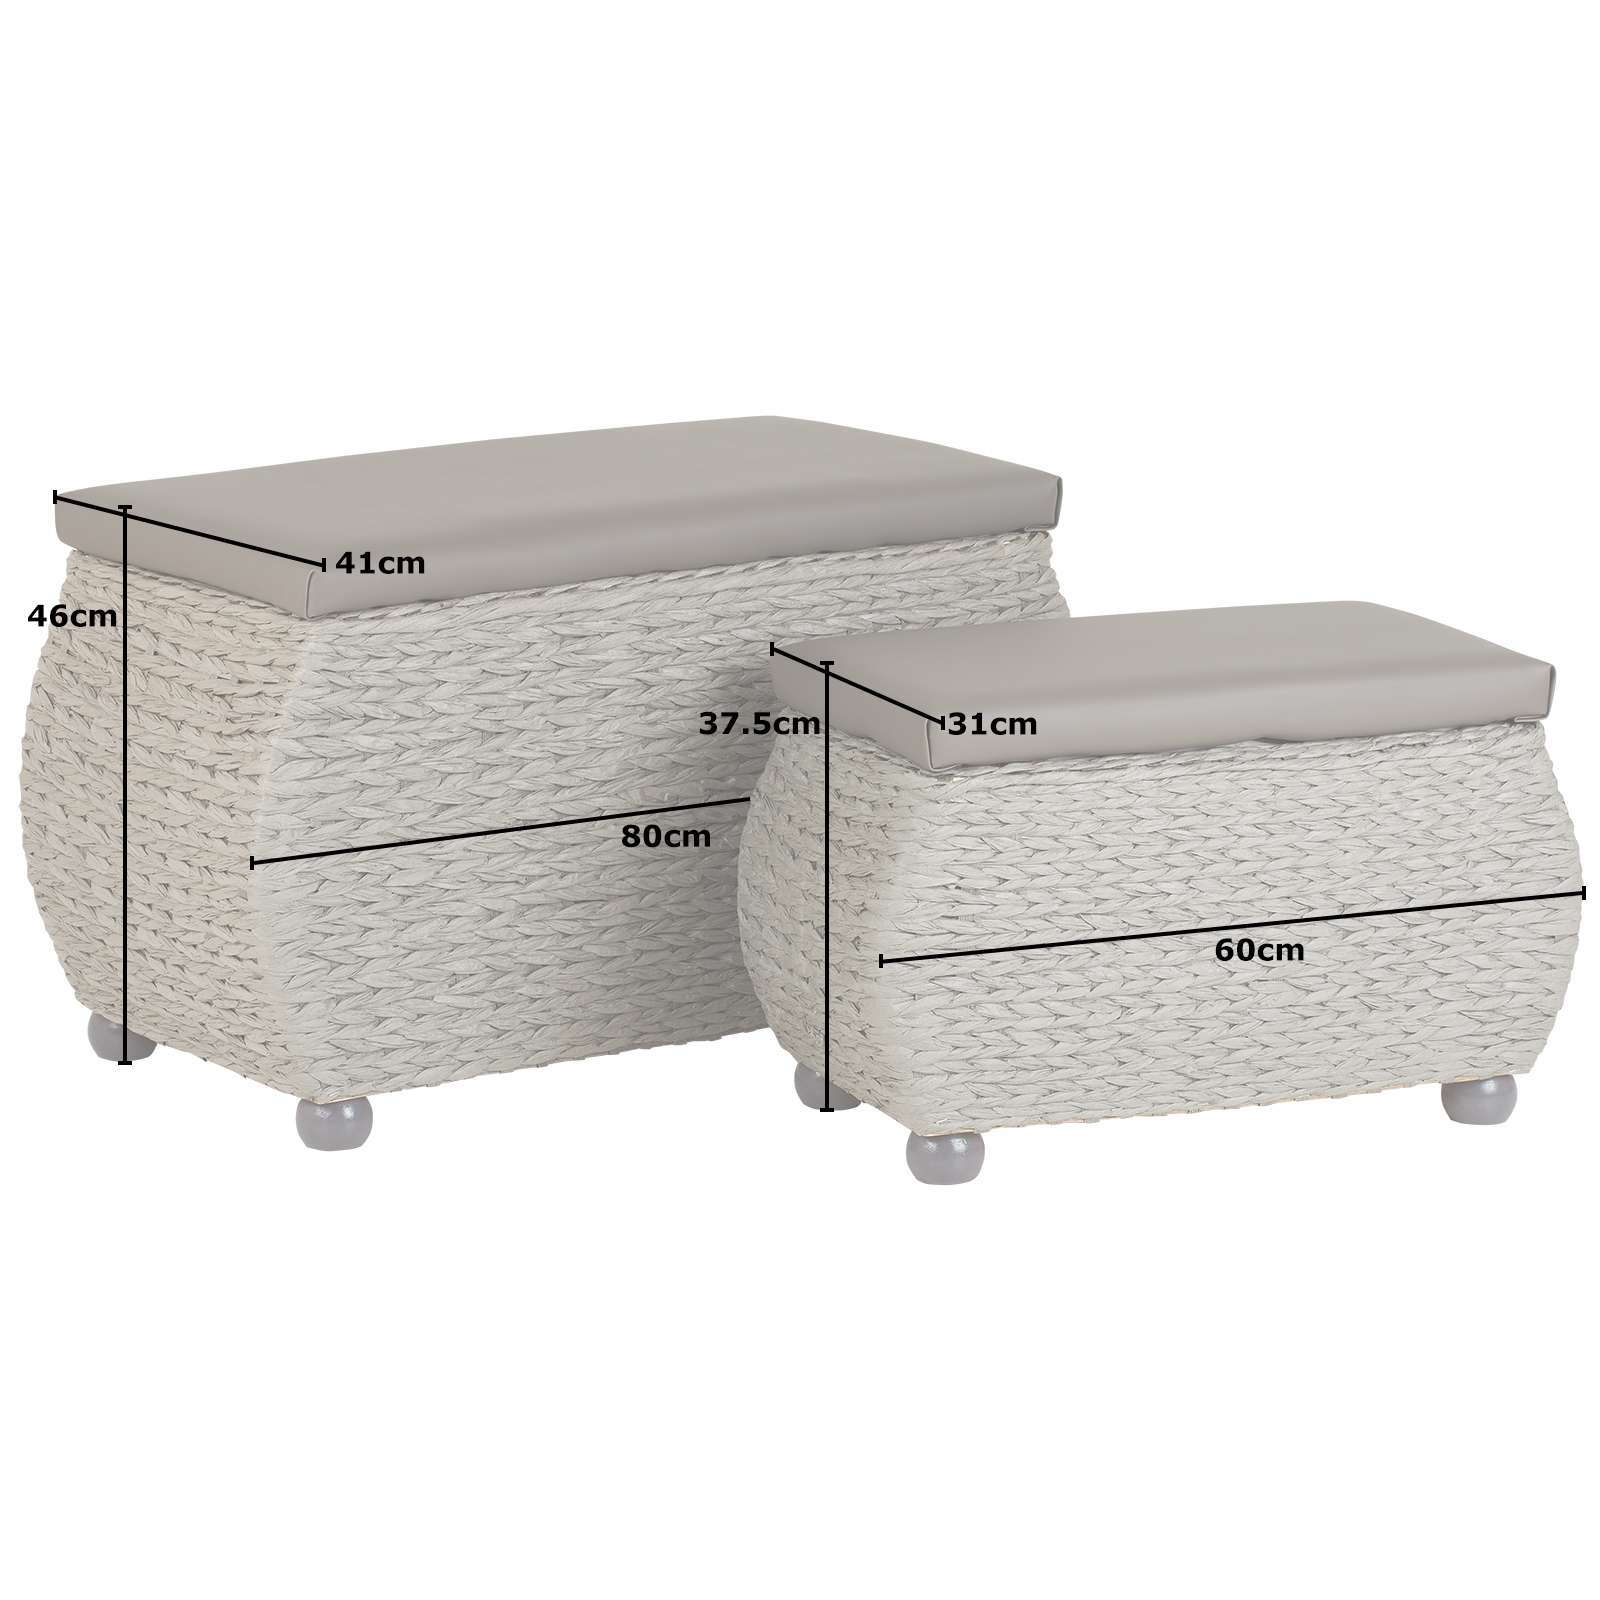 Astonishing Details About Hartleys Twin Storage Trunk Stool Bedding Blanket Rattan Wicker Box Bench Seat Pdpeps Interior Chair Design Pdpepsorg